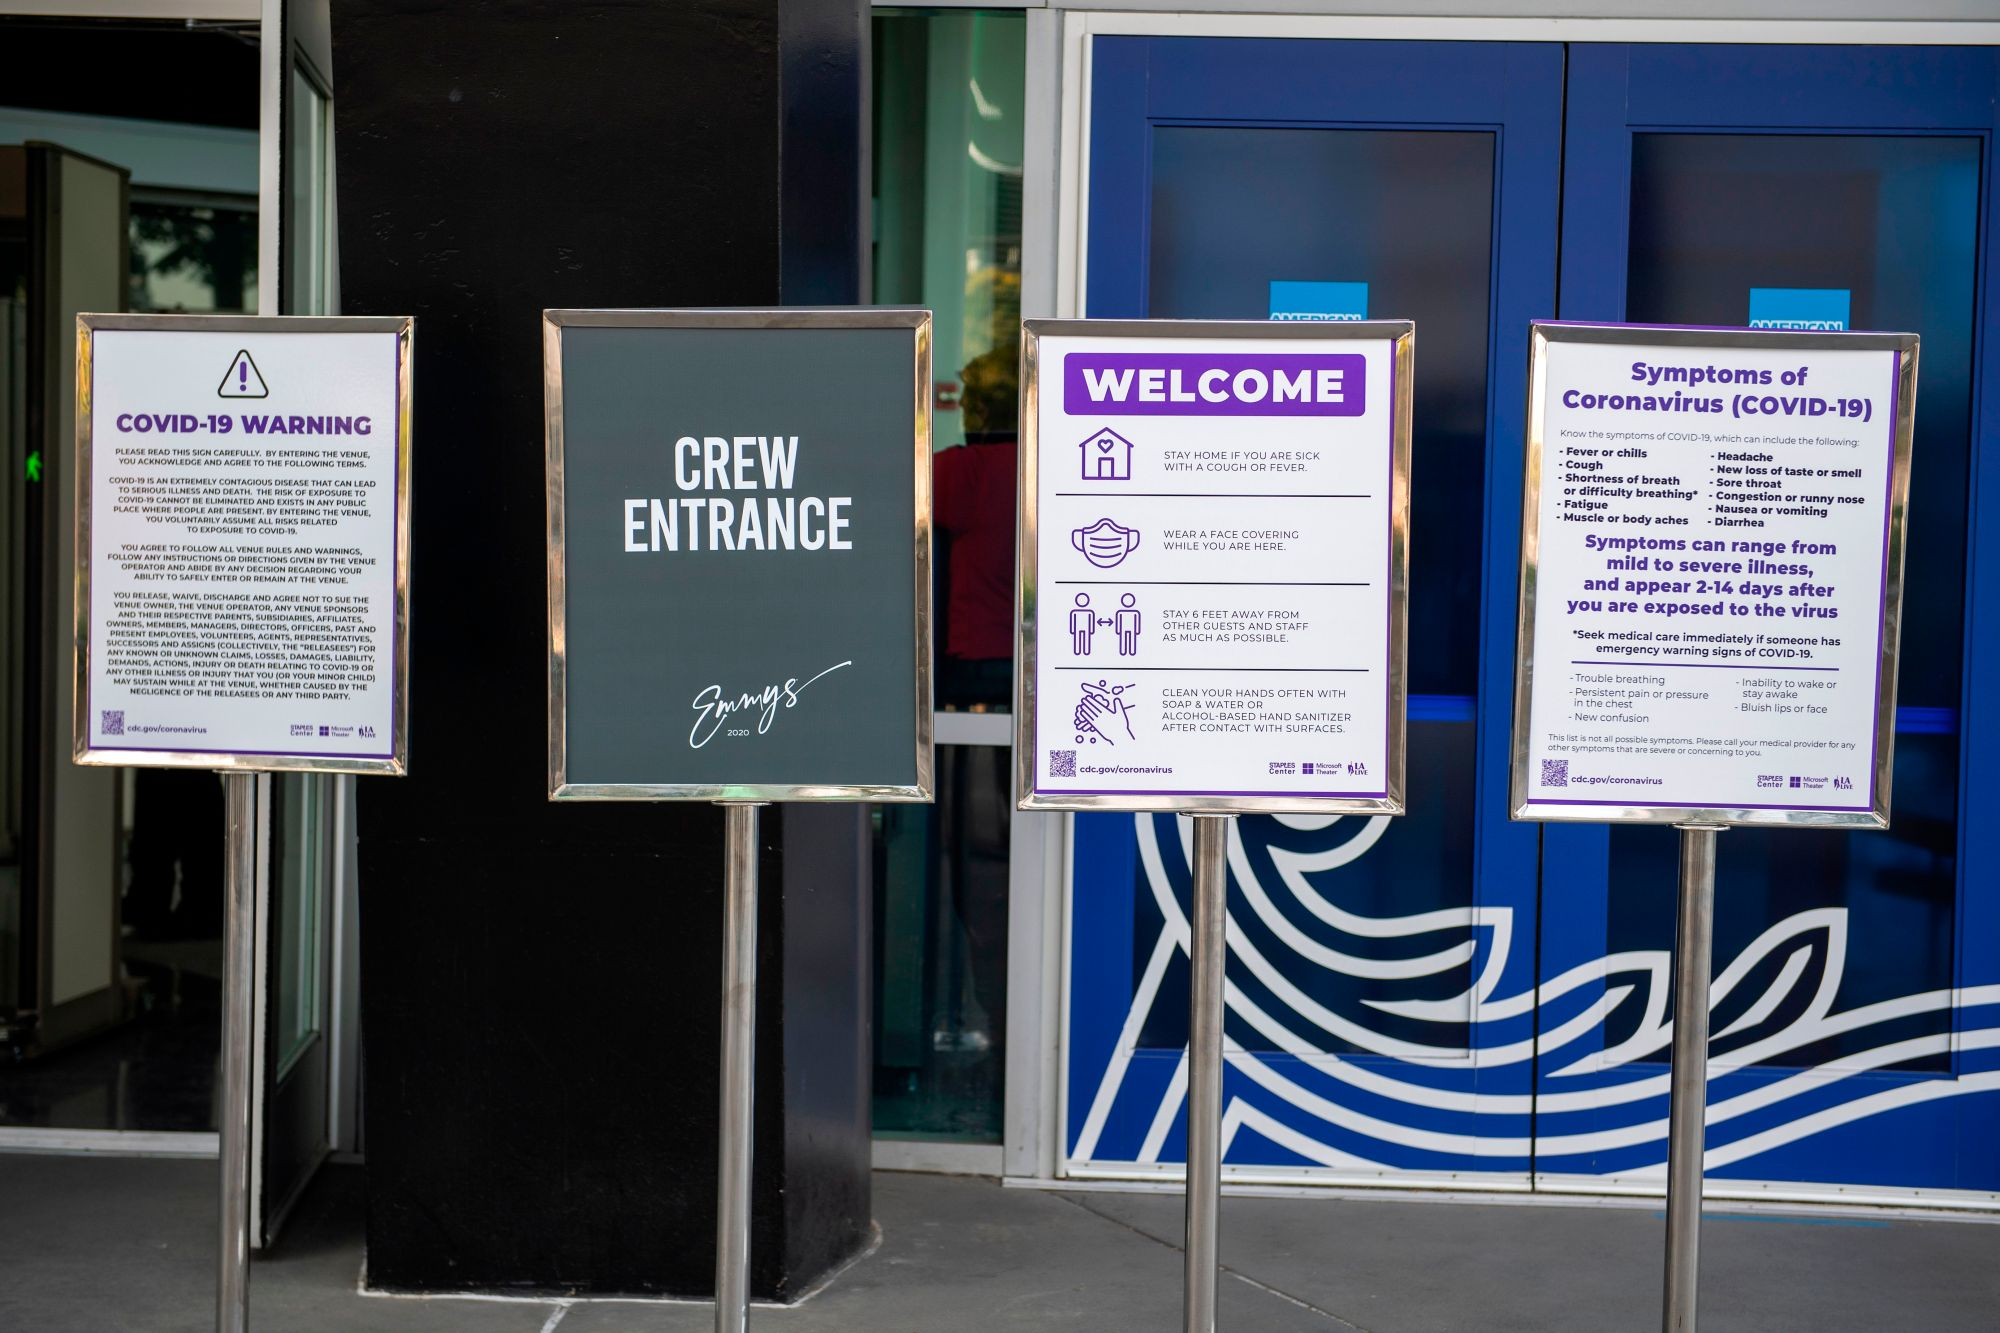 A sign showing the rules for the Emmys' crew is posted in front of the Staples center, at LA Live, where part of the Emmy will take place, Sept. 18, 2020, in Los Angeles California. (VALERIE MACON/AFP via Getty Images)